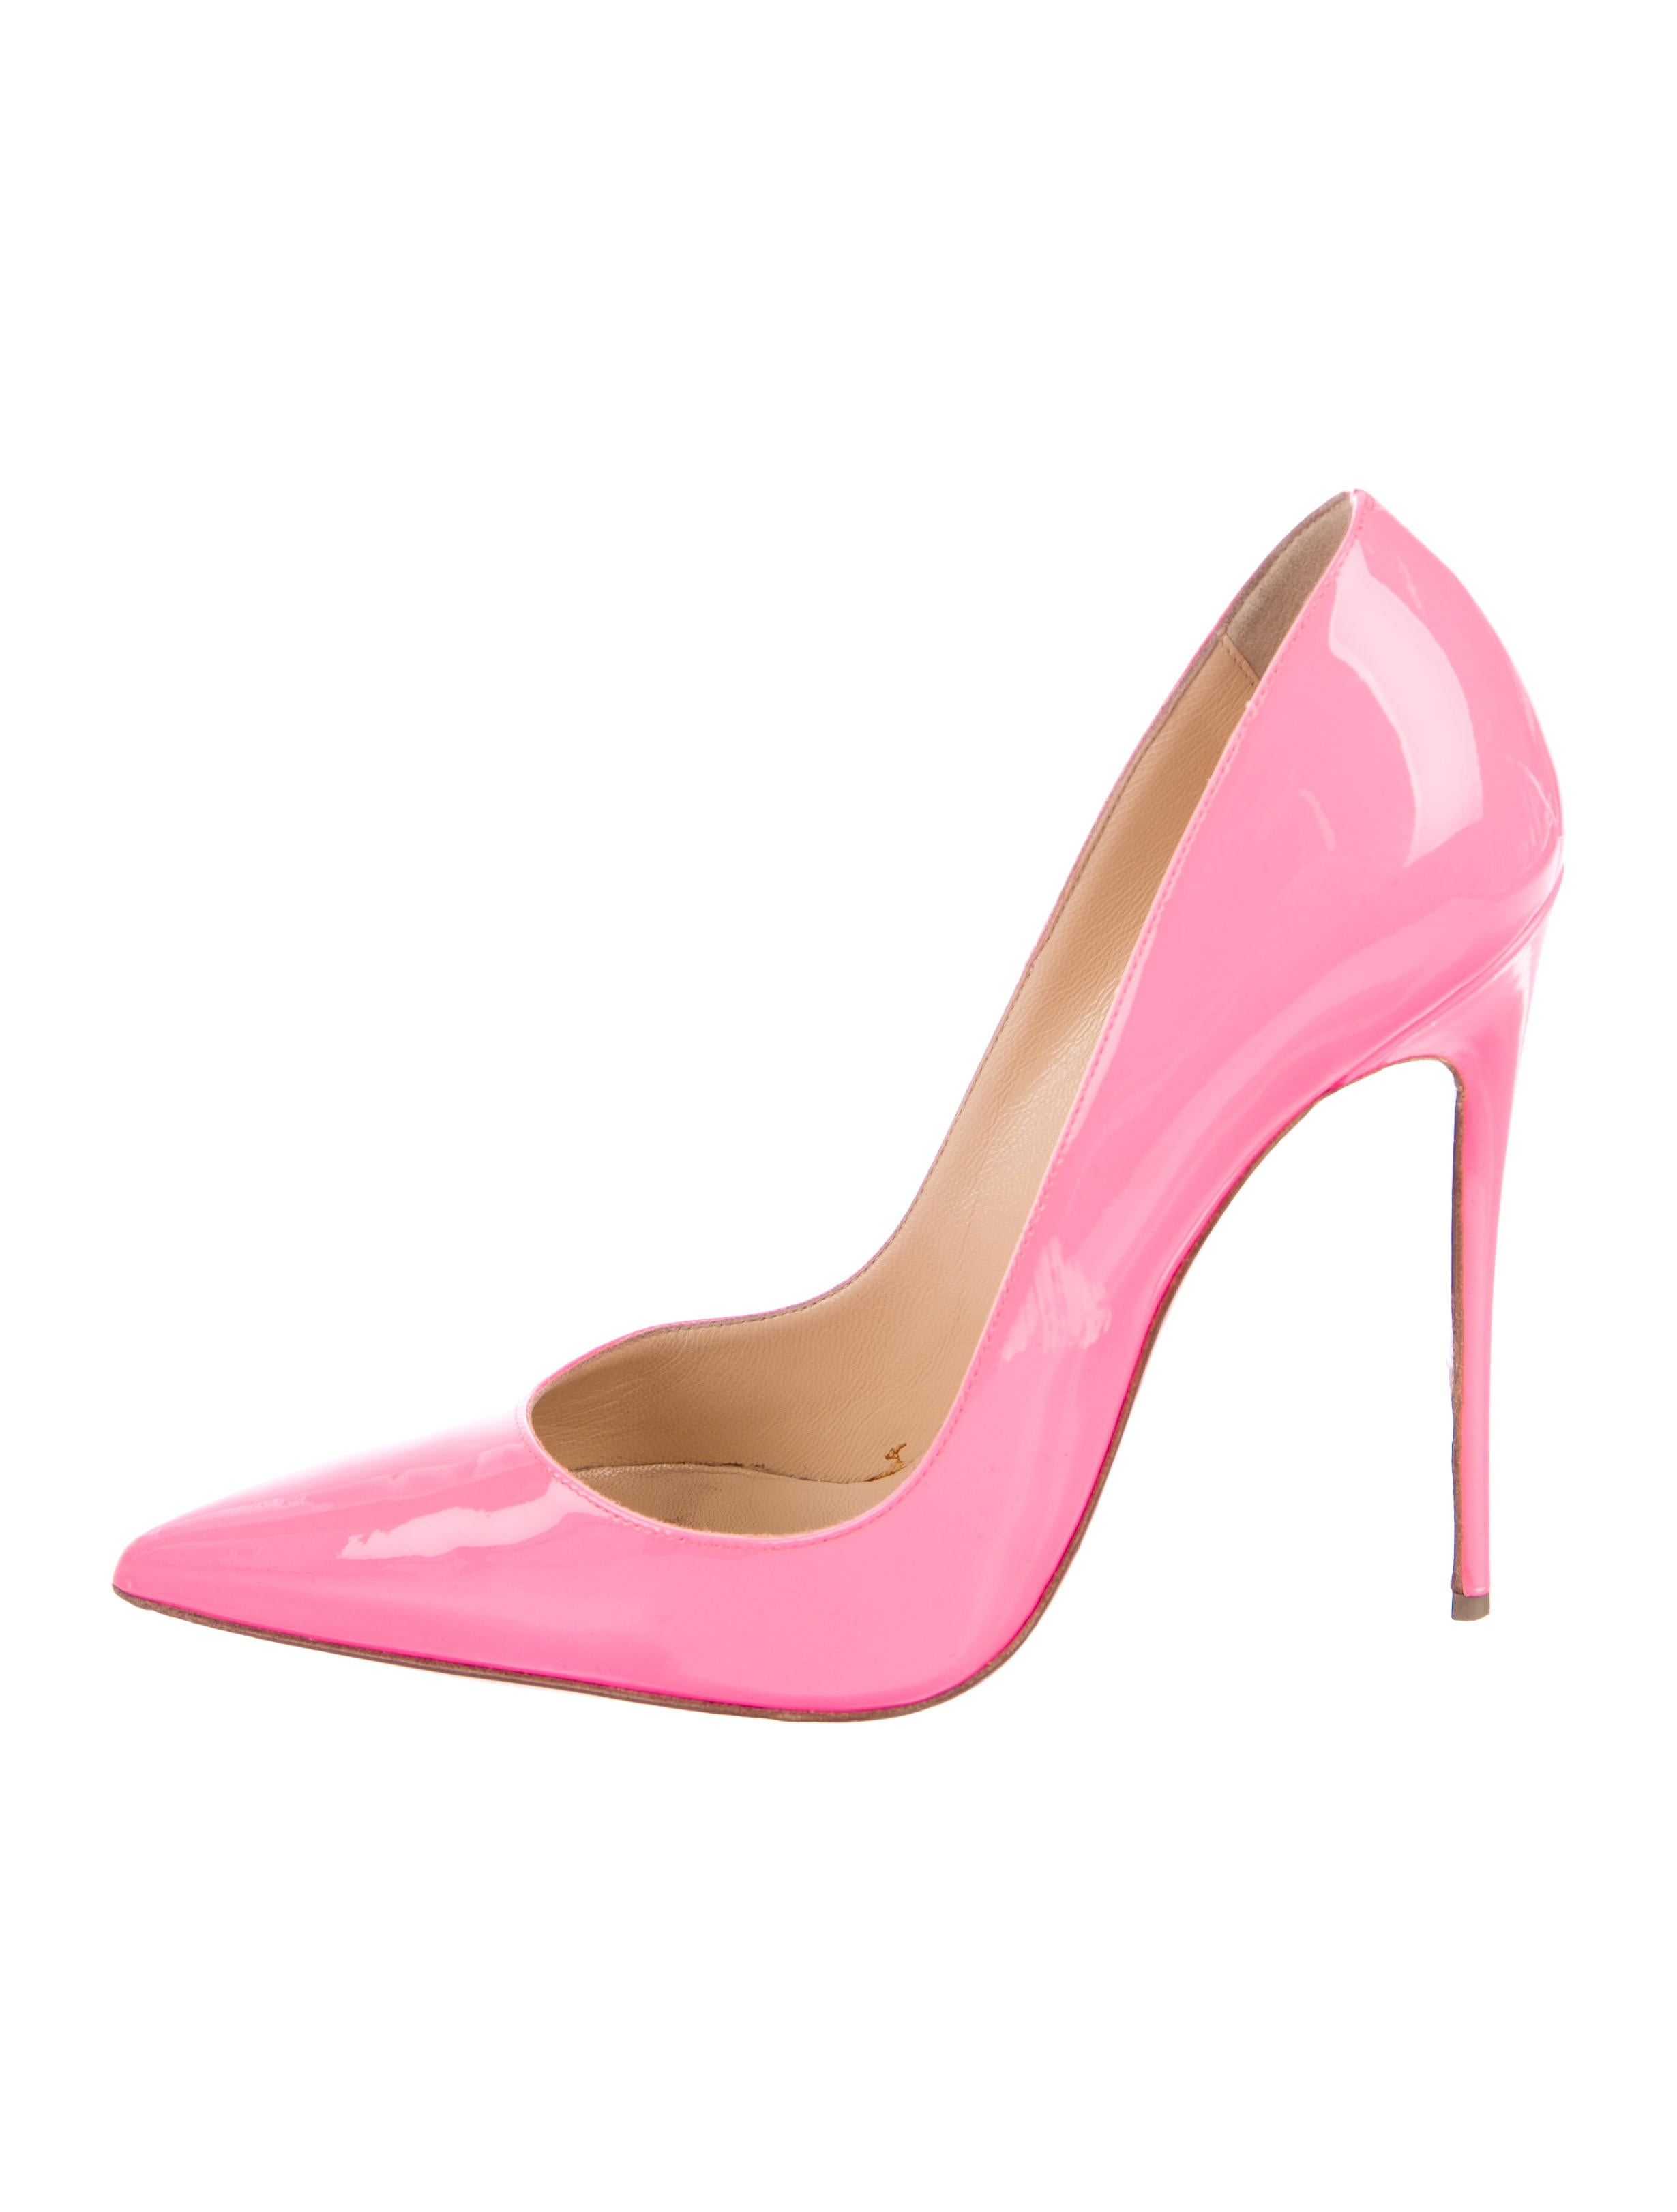 c78f0ae2cdd Christian Louboutin Neon So Kate Pumps - Shoes - CHT92209 | The RealReal